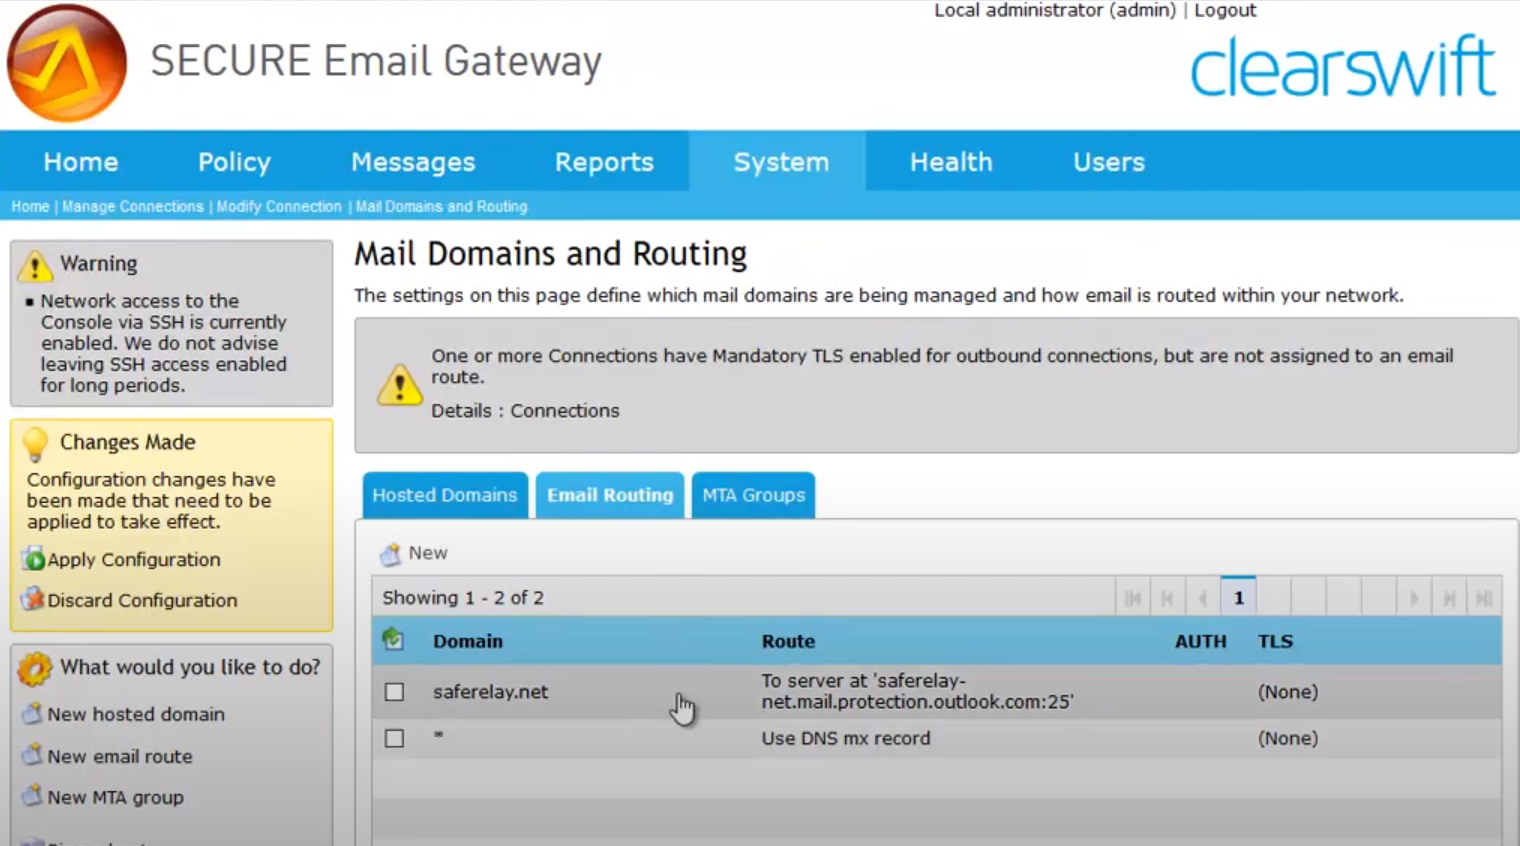 Clearswift SECURE Email Gateway mail domains